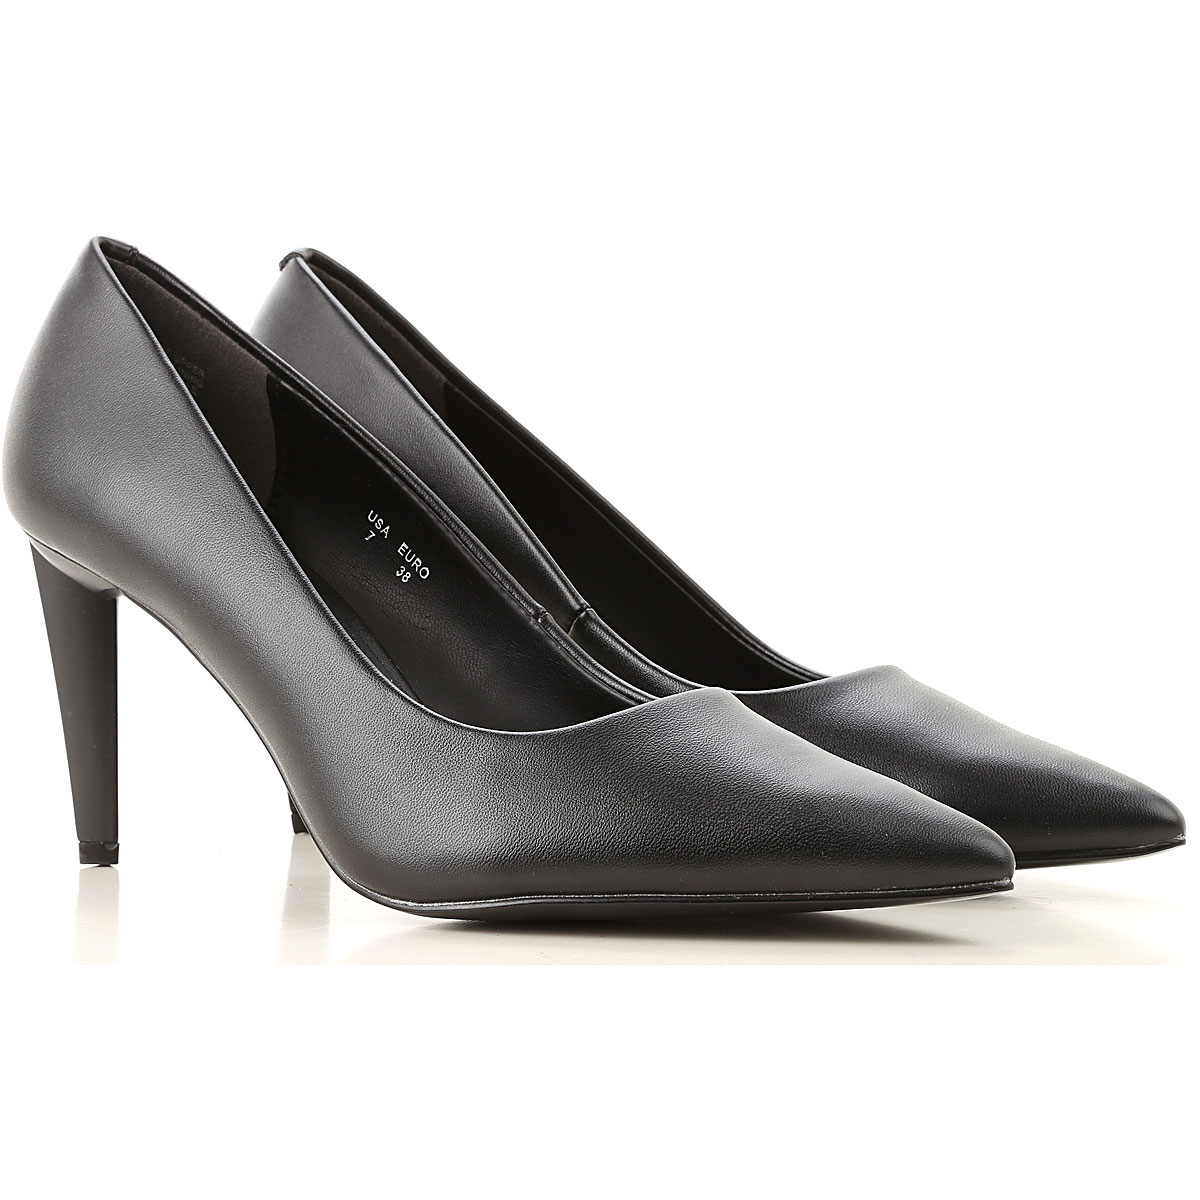 Kendall Kylie Pumps & High Heels for Women, Black, Eco Leather, 2019, 6 7 8